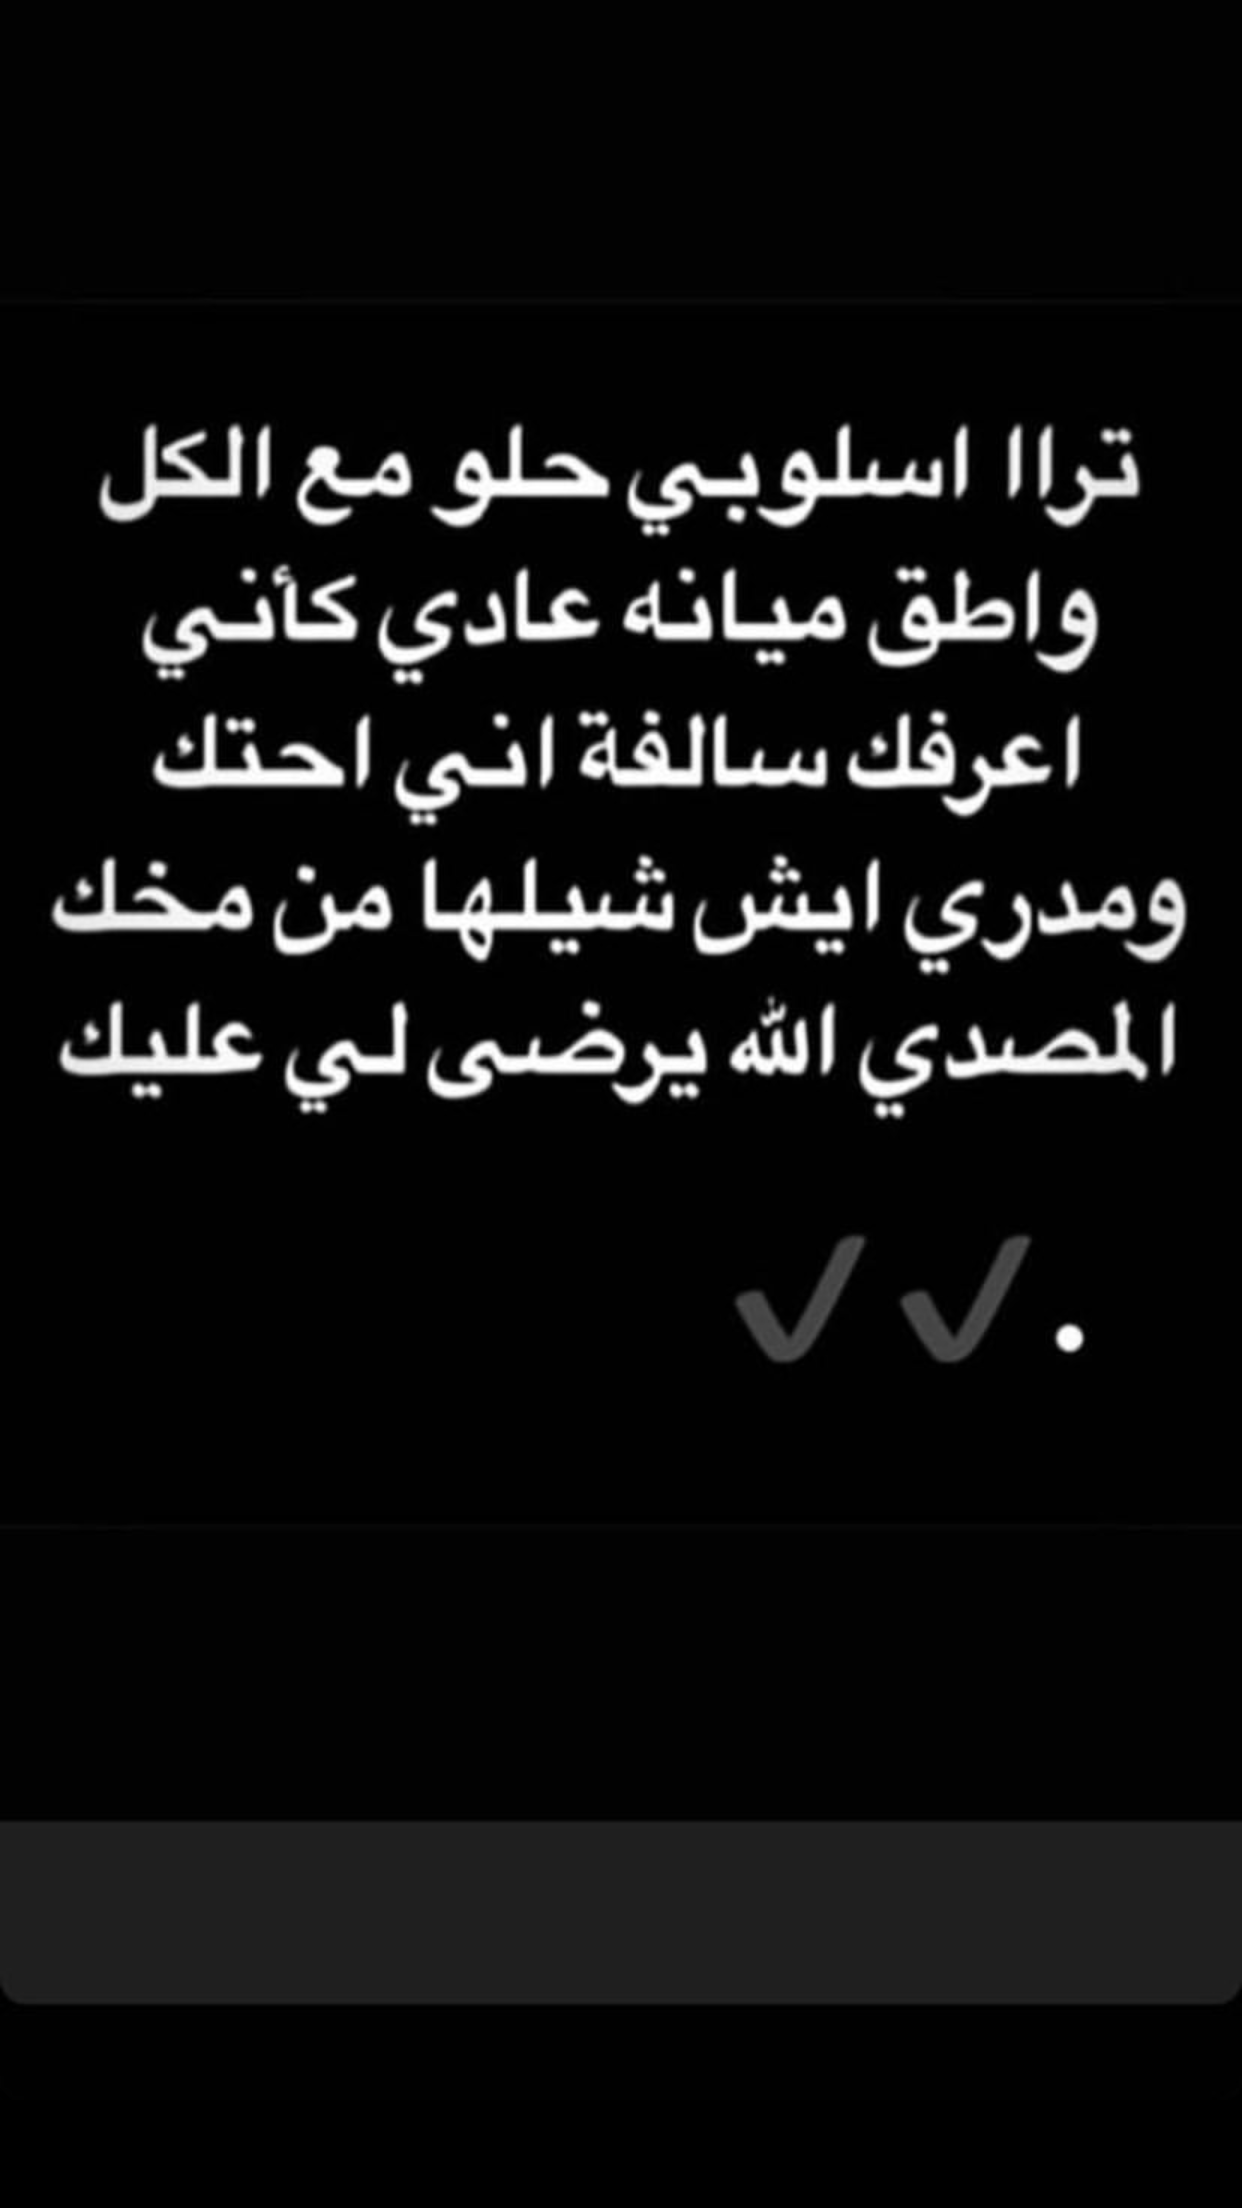 Pin By Edo On فعاليات ميمز Jokes Quotes Funny Arabic Quotes Laughing Quotes